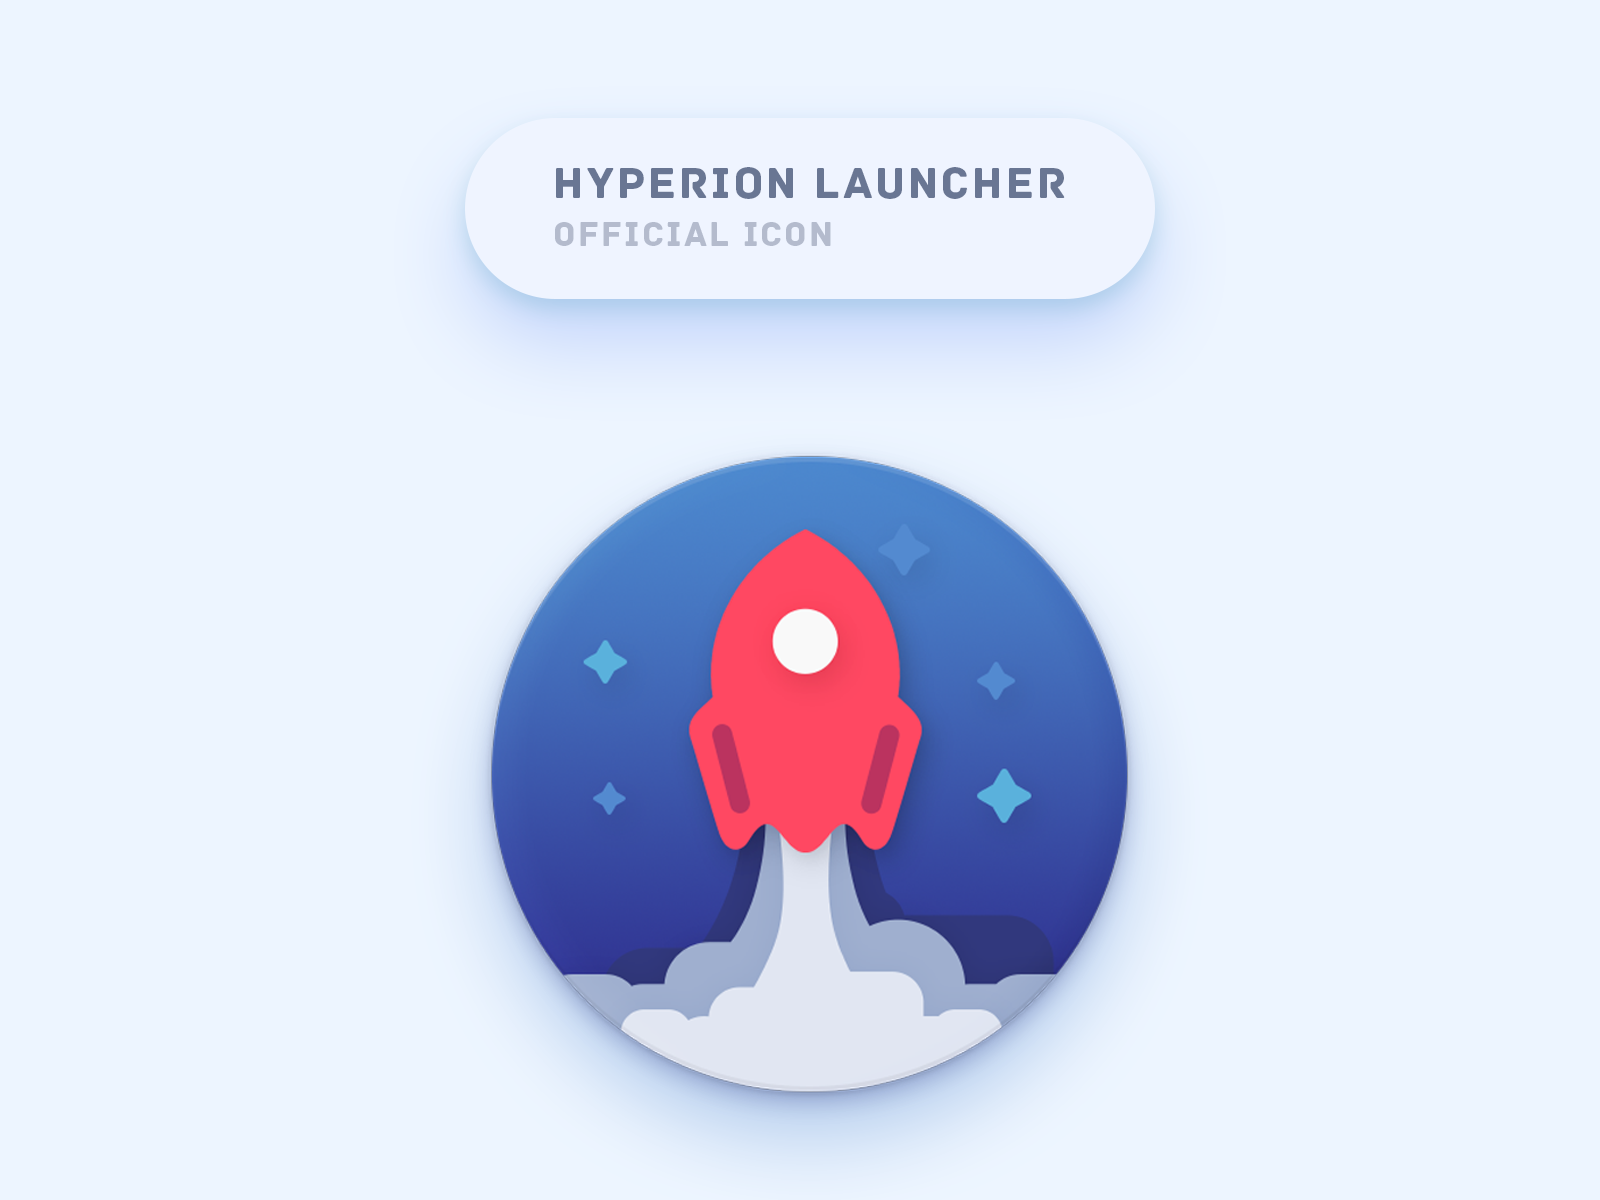 Hyperion  Launcher Official Icon android hyperion launcher icon product icon illustartion design product icon launcher